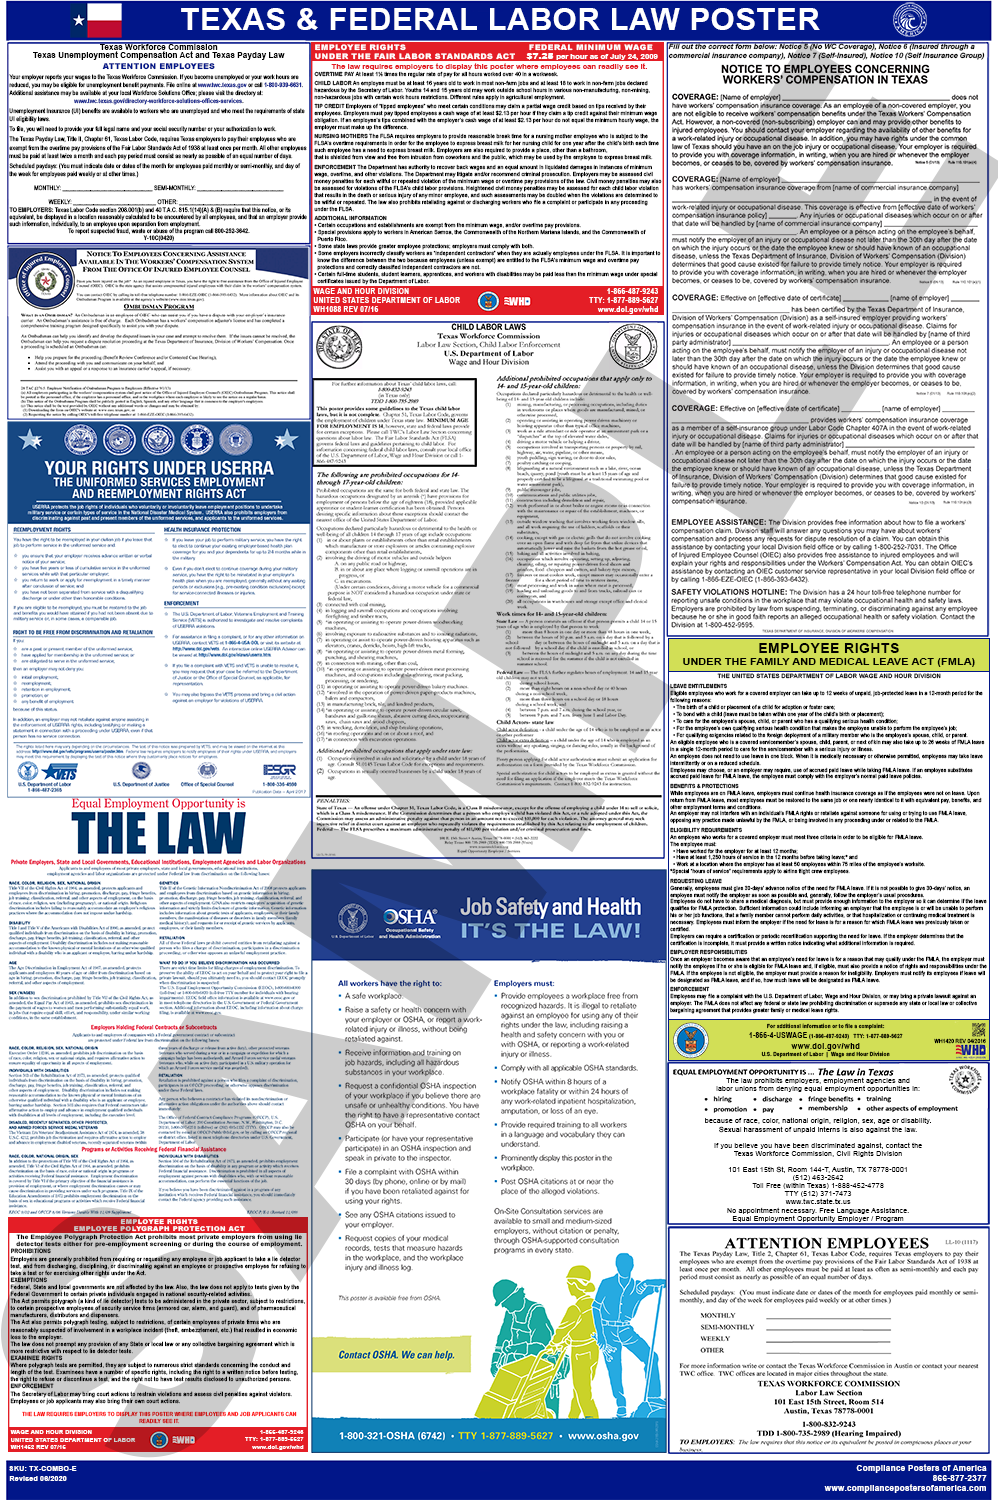 2020 Texas And Federal Labor Law Poster